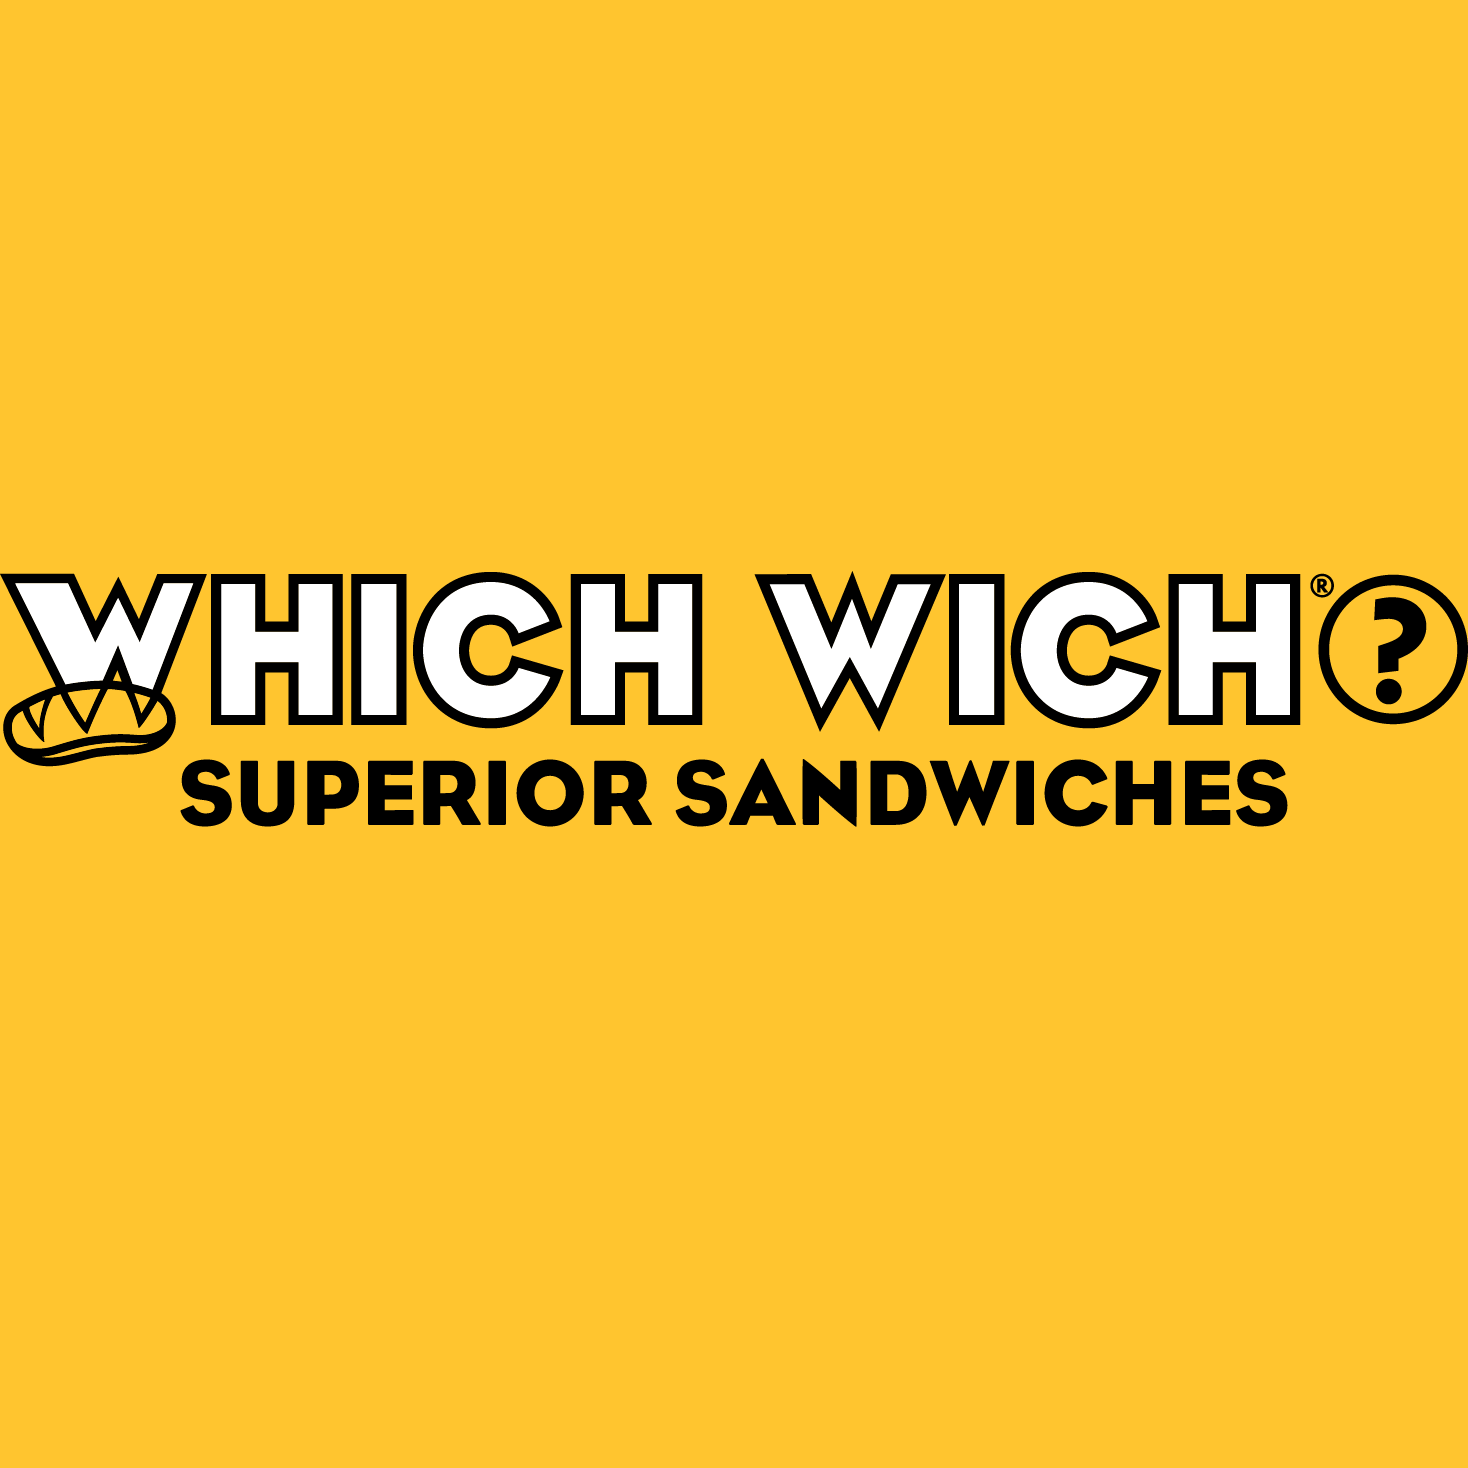 Which Wich? Franchise